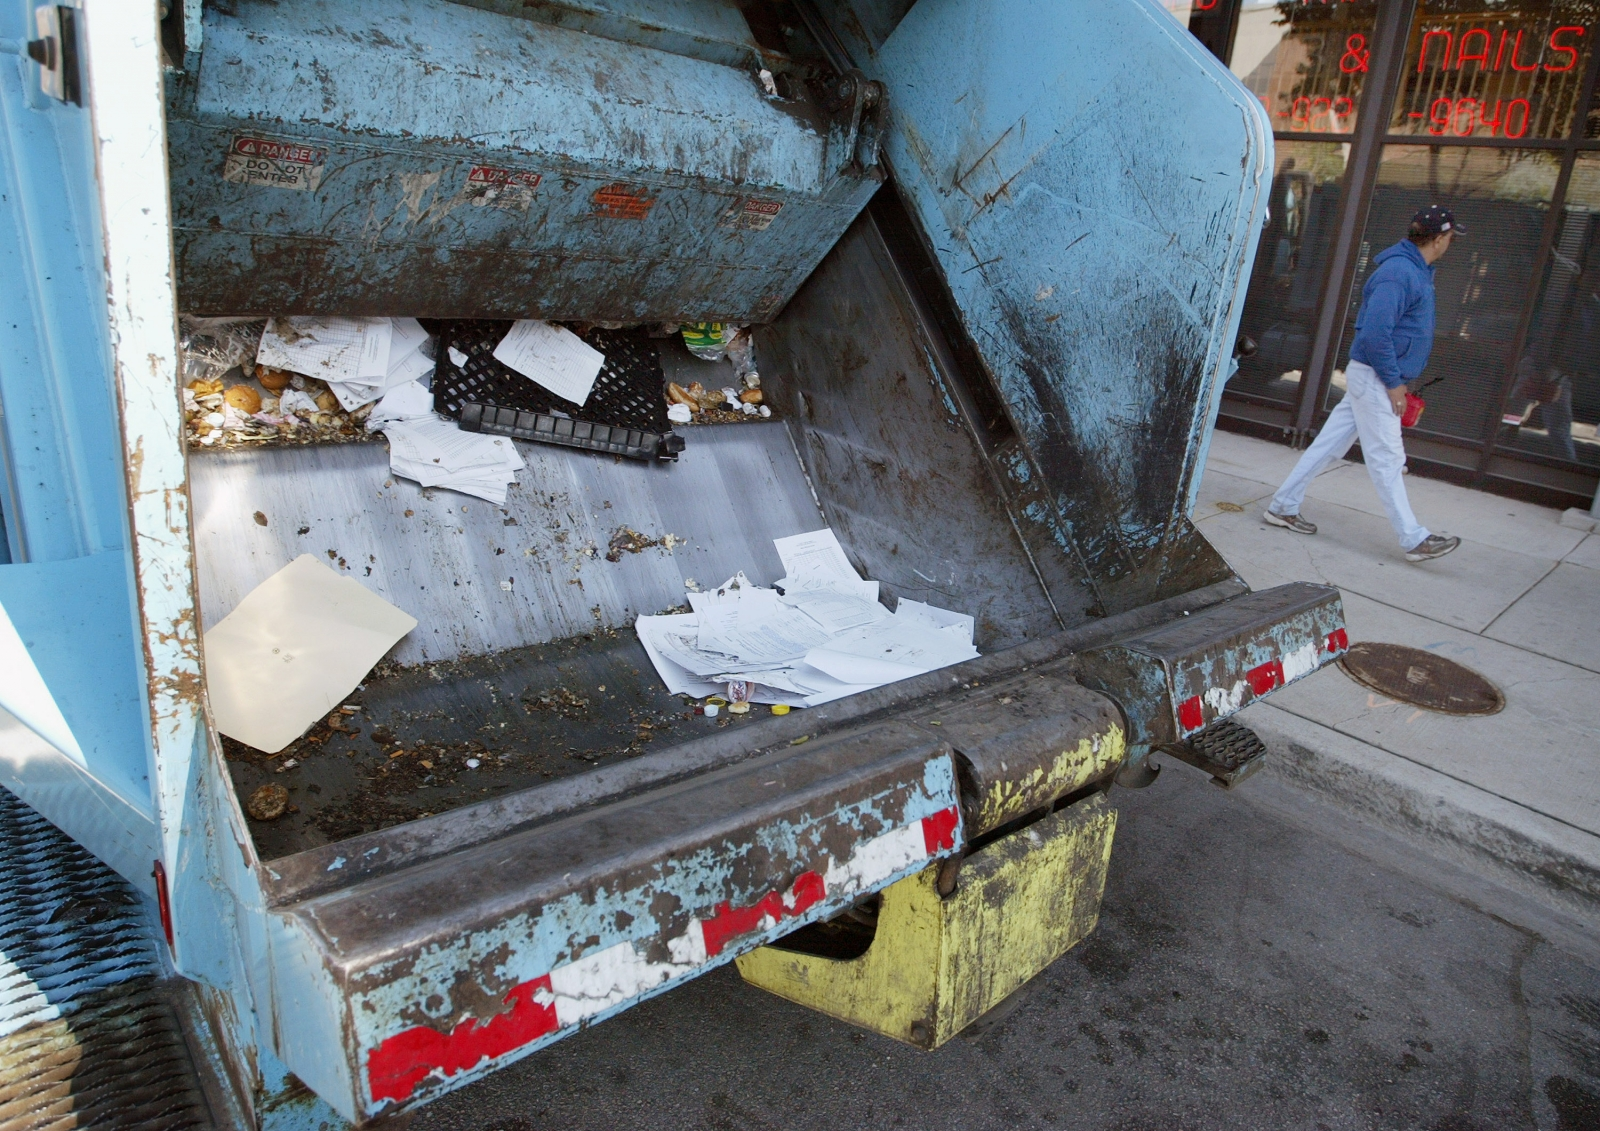 kansas man sleeping in dumpster is crushed after being